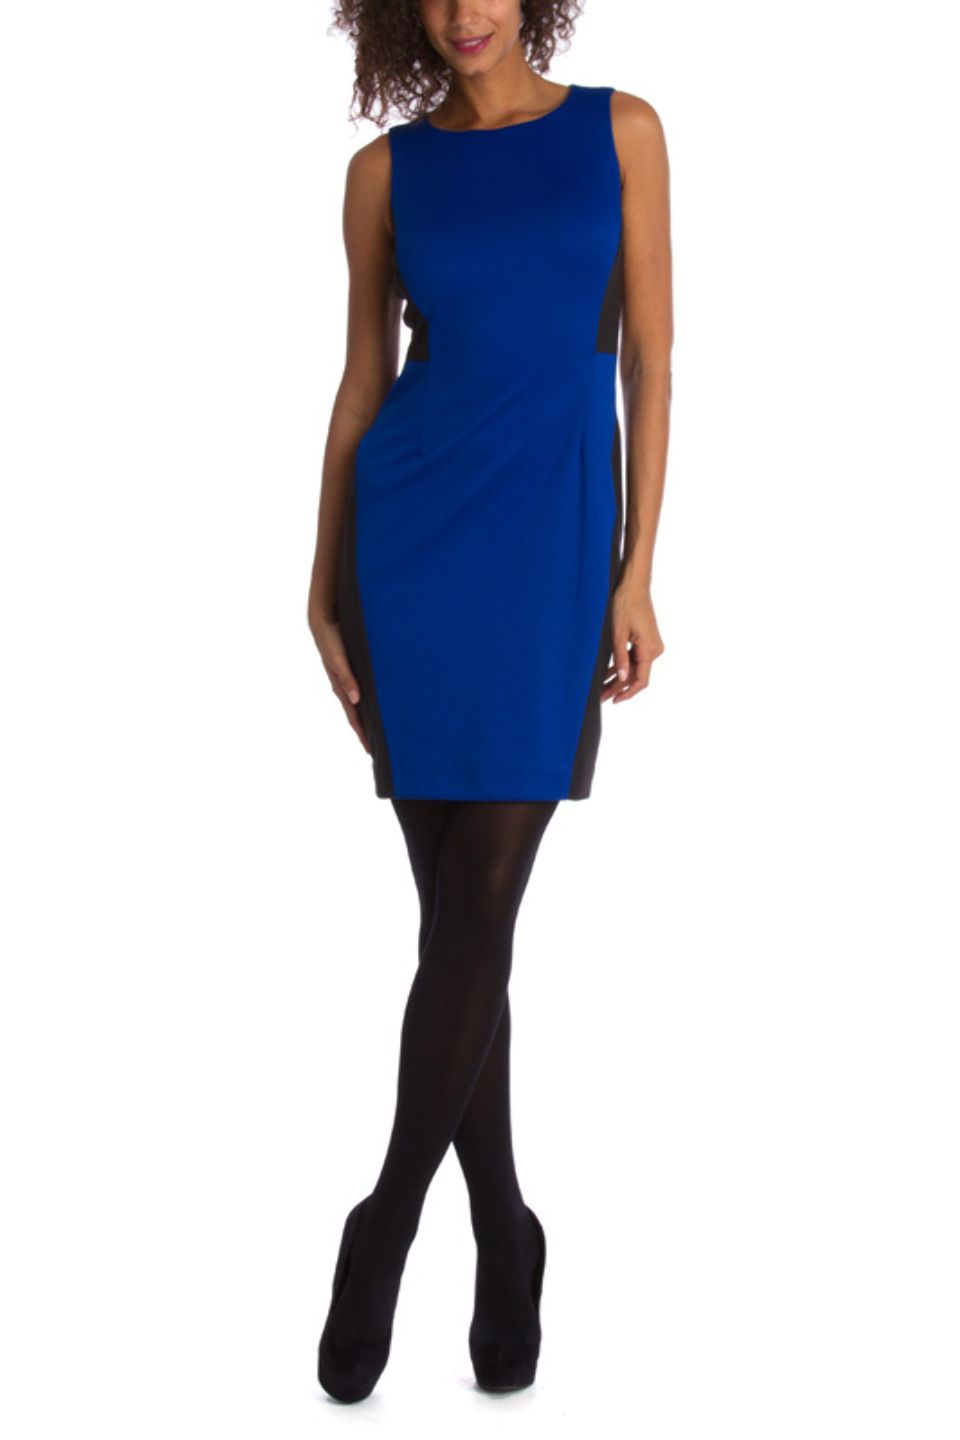 4a002b1566b Royal blue dress with black tights. Good to know.